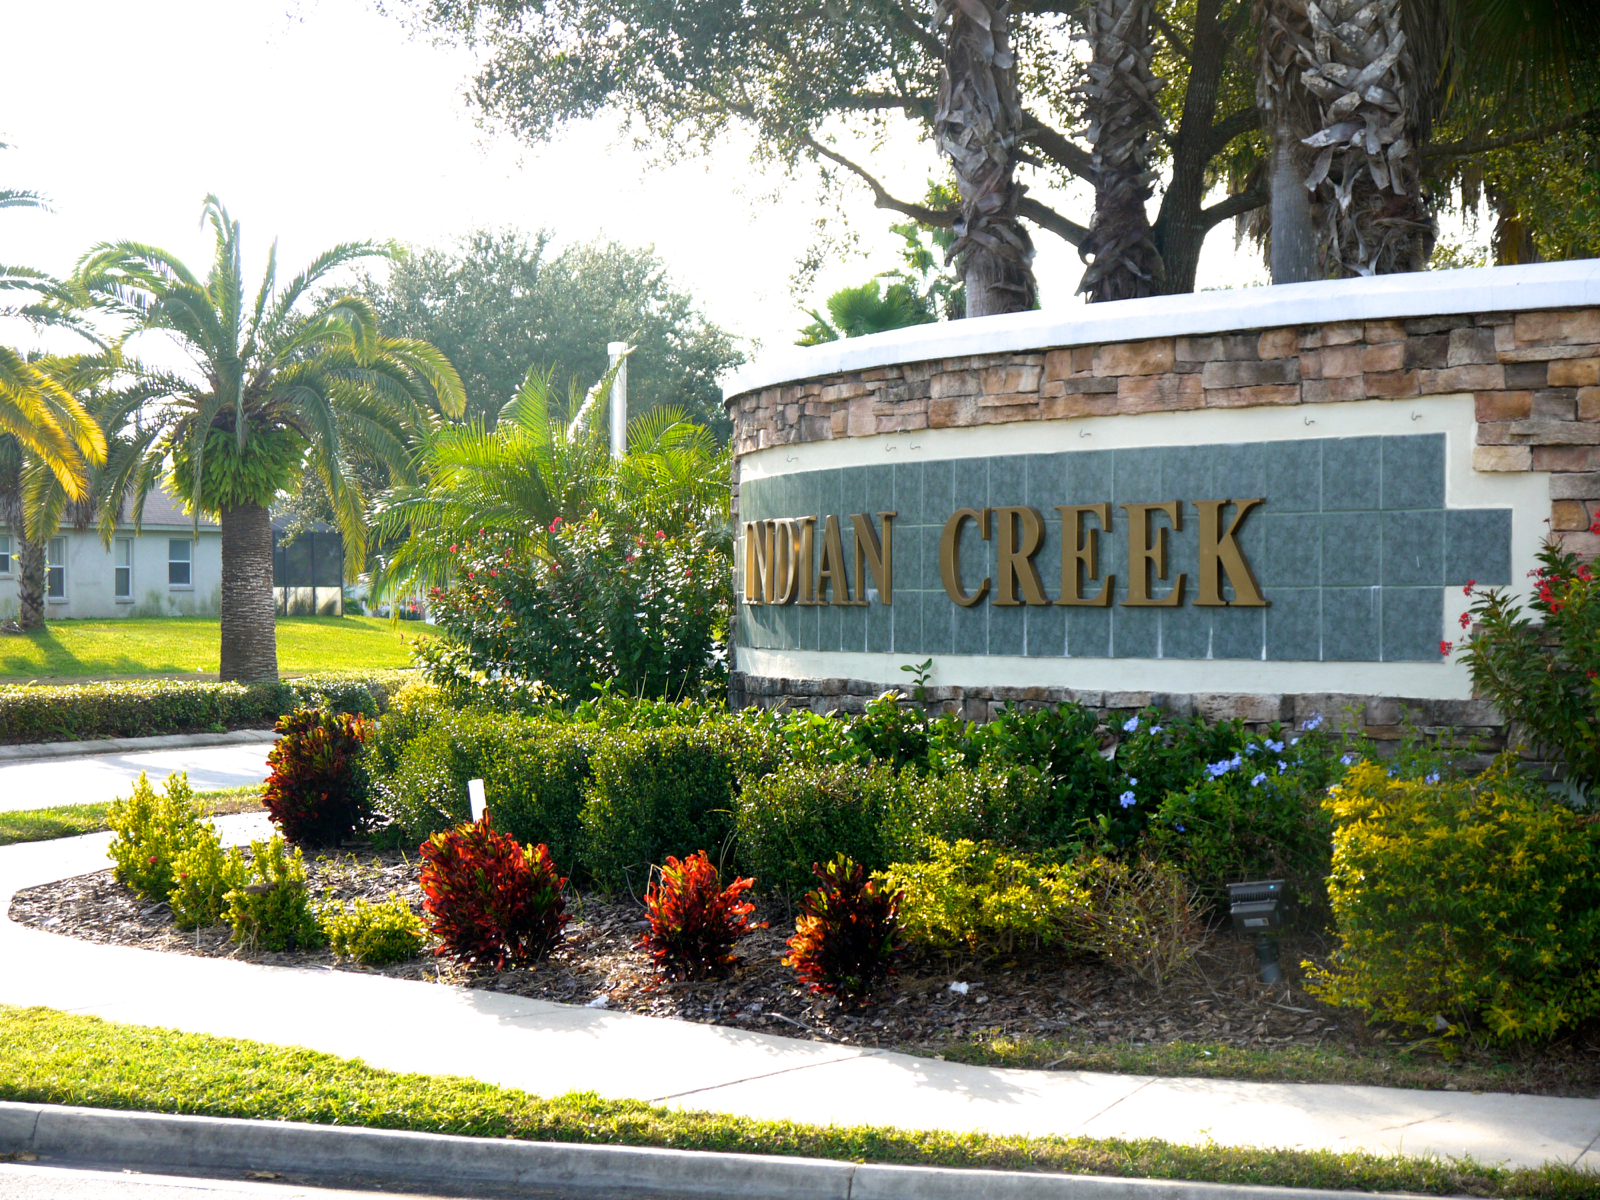 Indian Creek Entrance